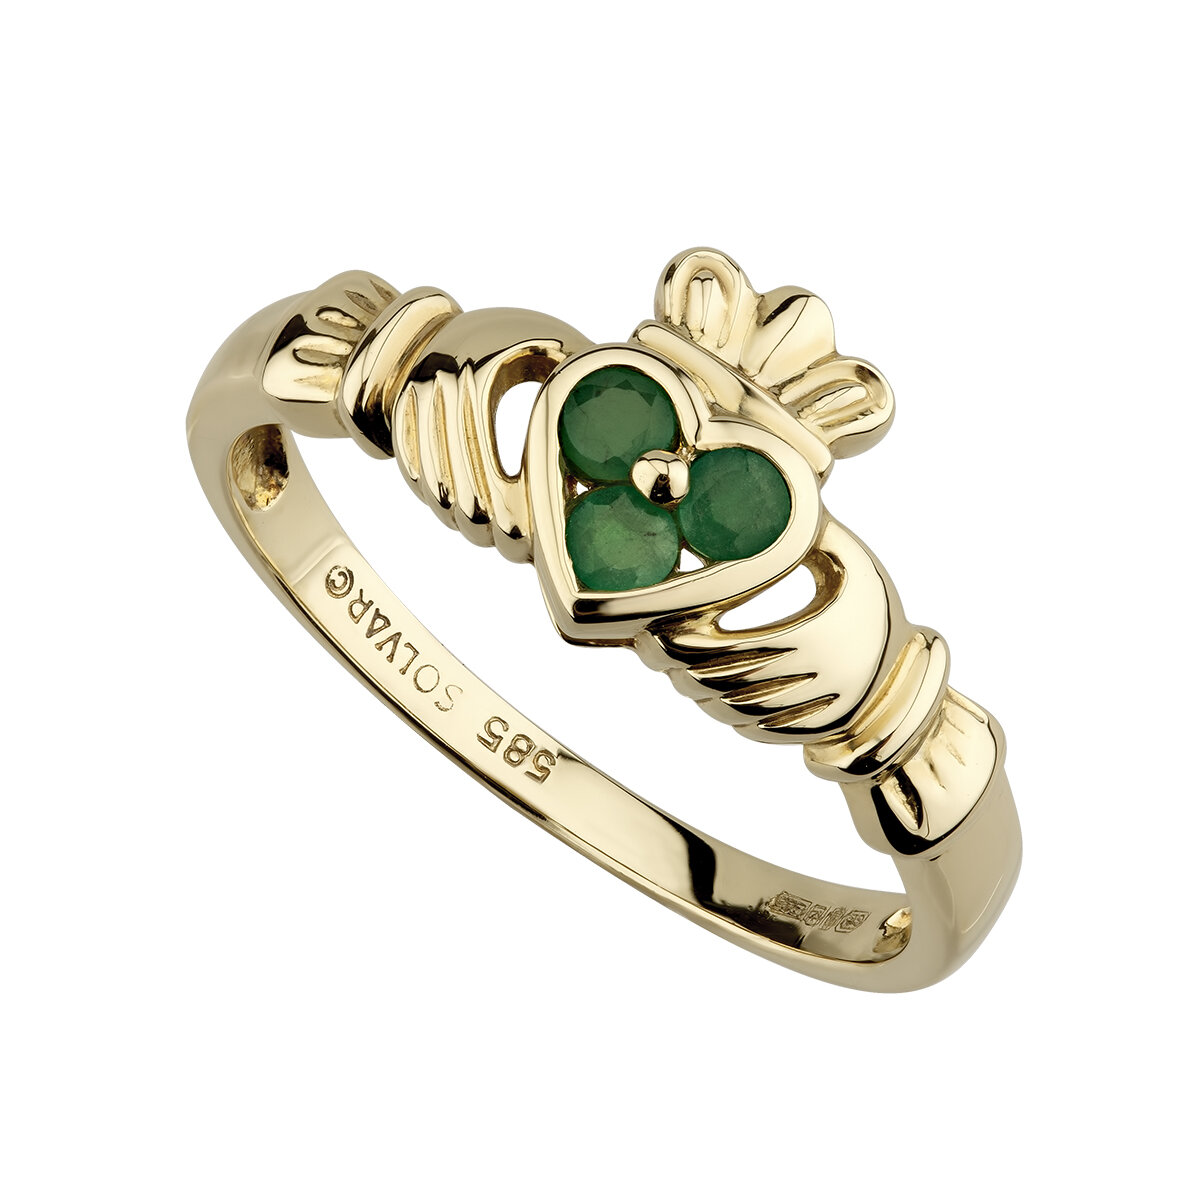 14K gold claddagh emerald heart ring s2466 from Solvar